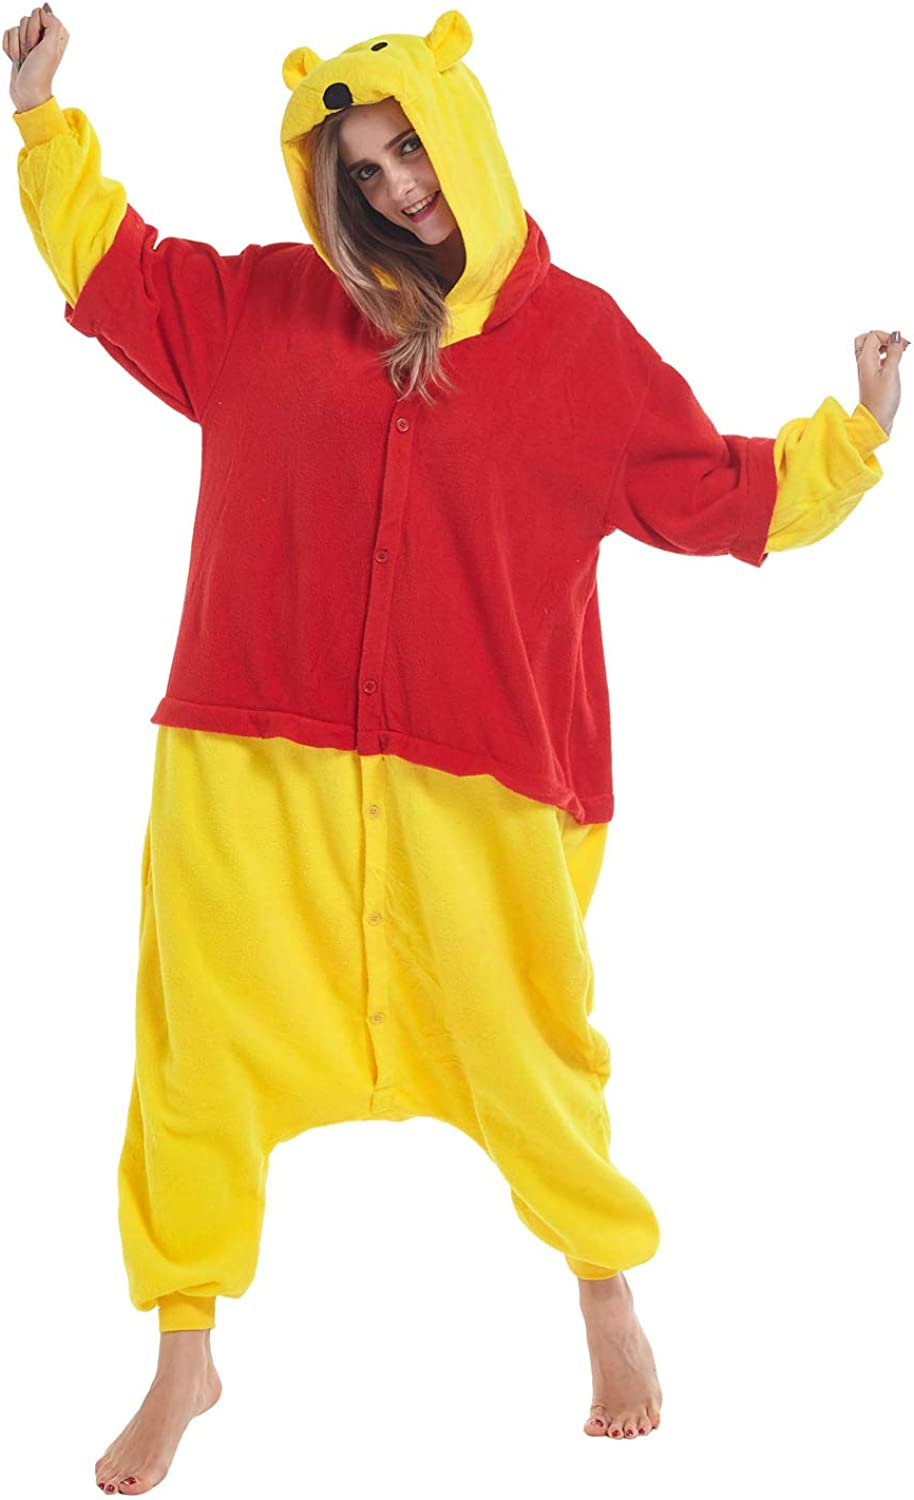 Zinuods List price Unisex Adult Pajamas Winnie Outlet sale feature Onesies The Animal Cosp Pooh